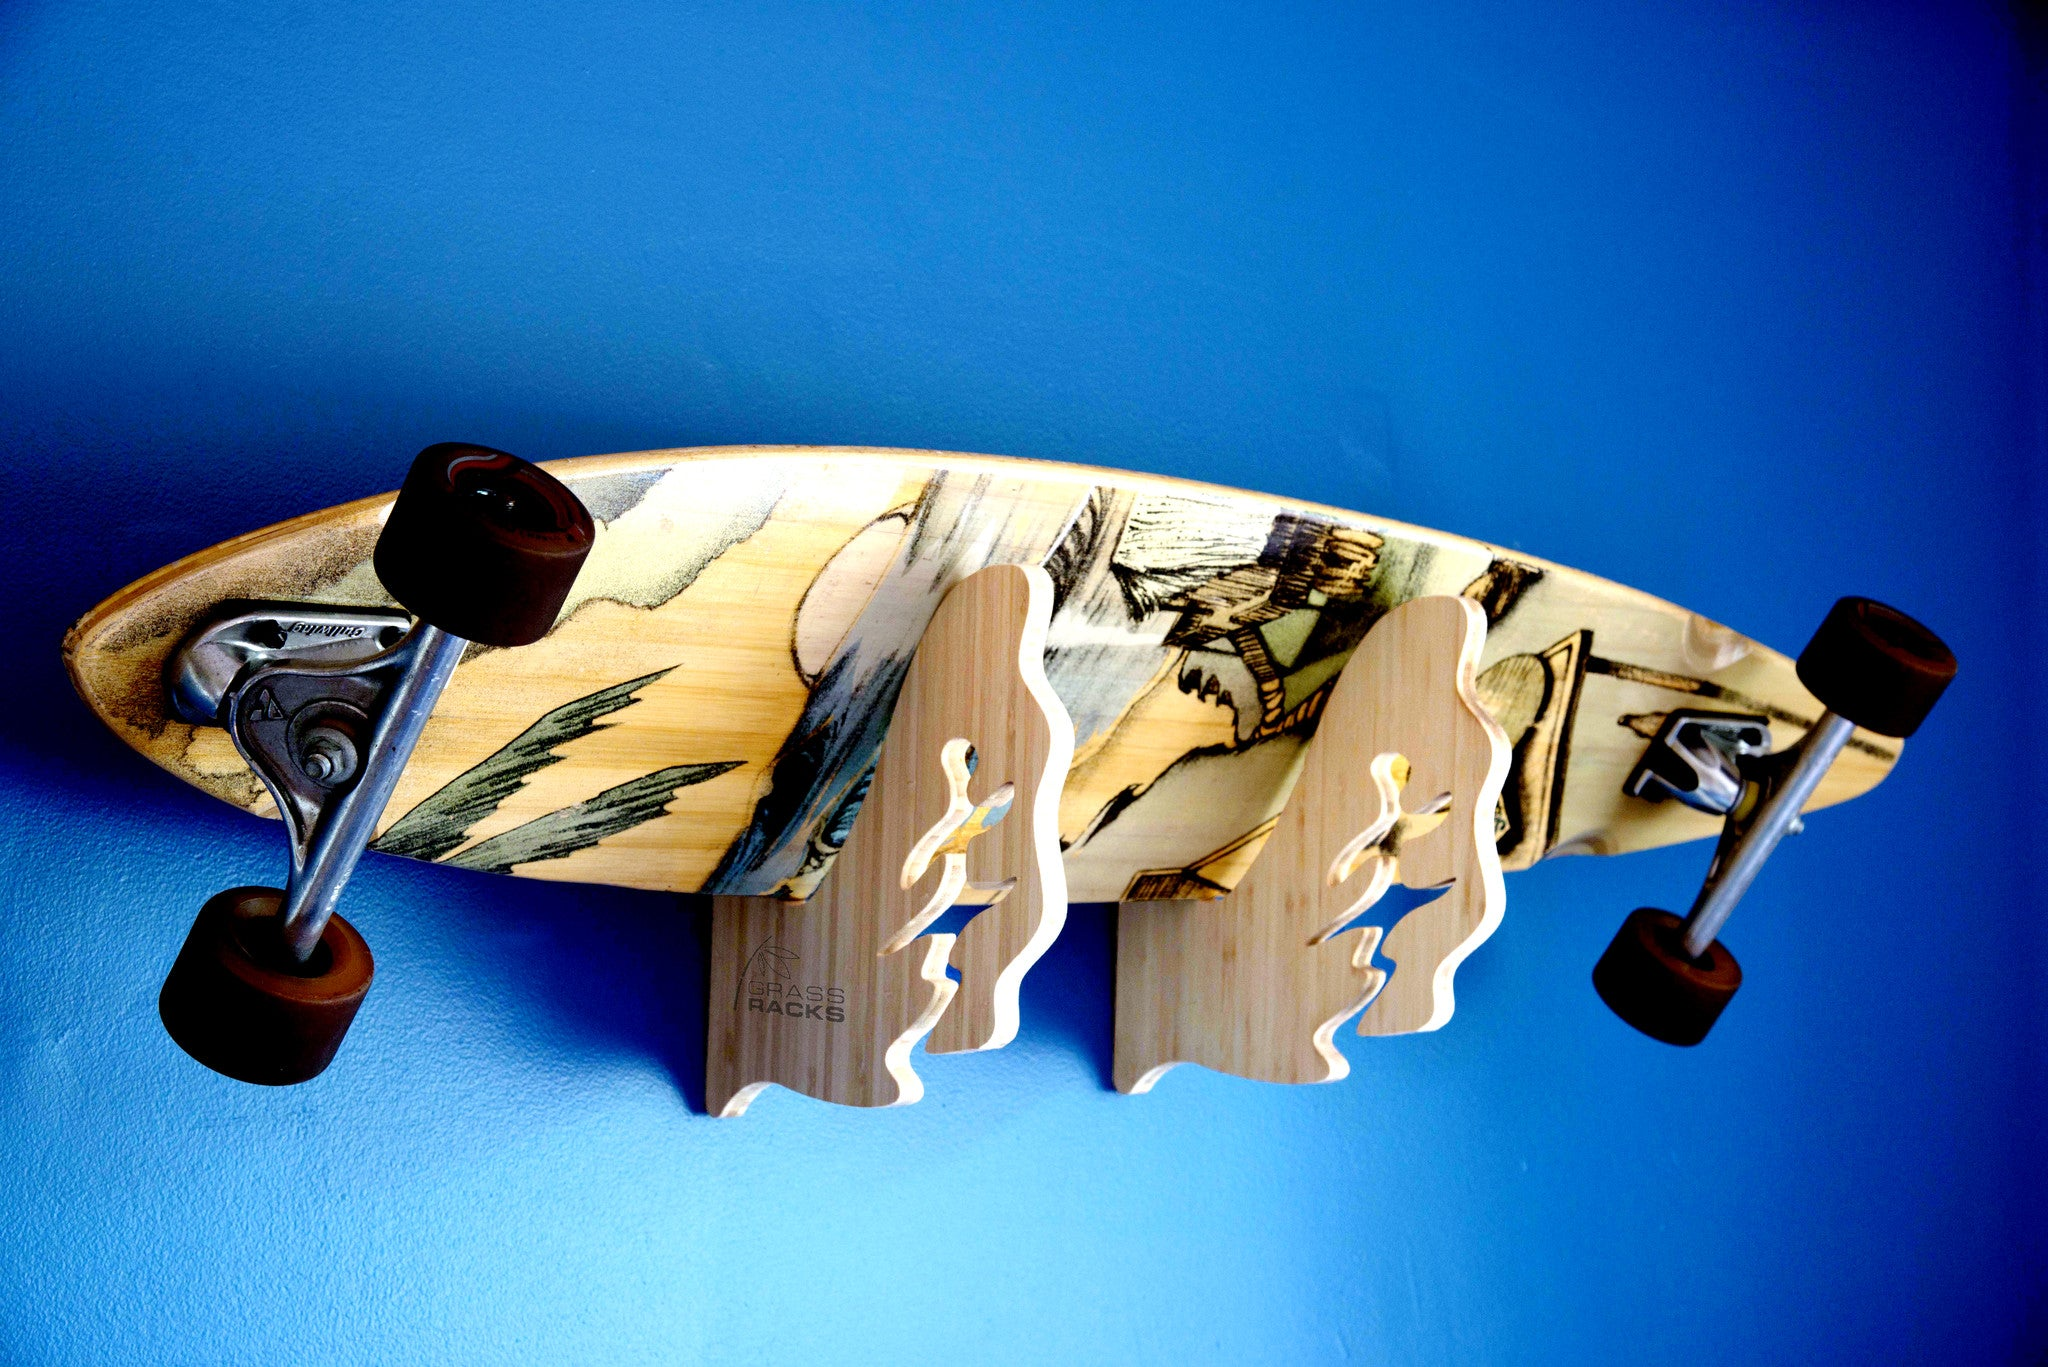 Wall Rack Mounted Skateboard Display Grassracks